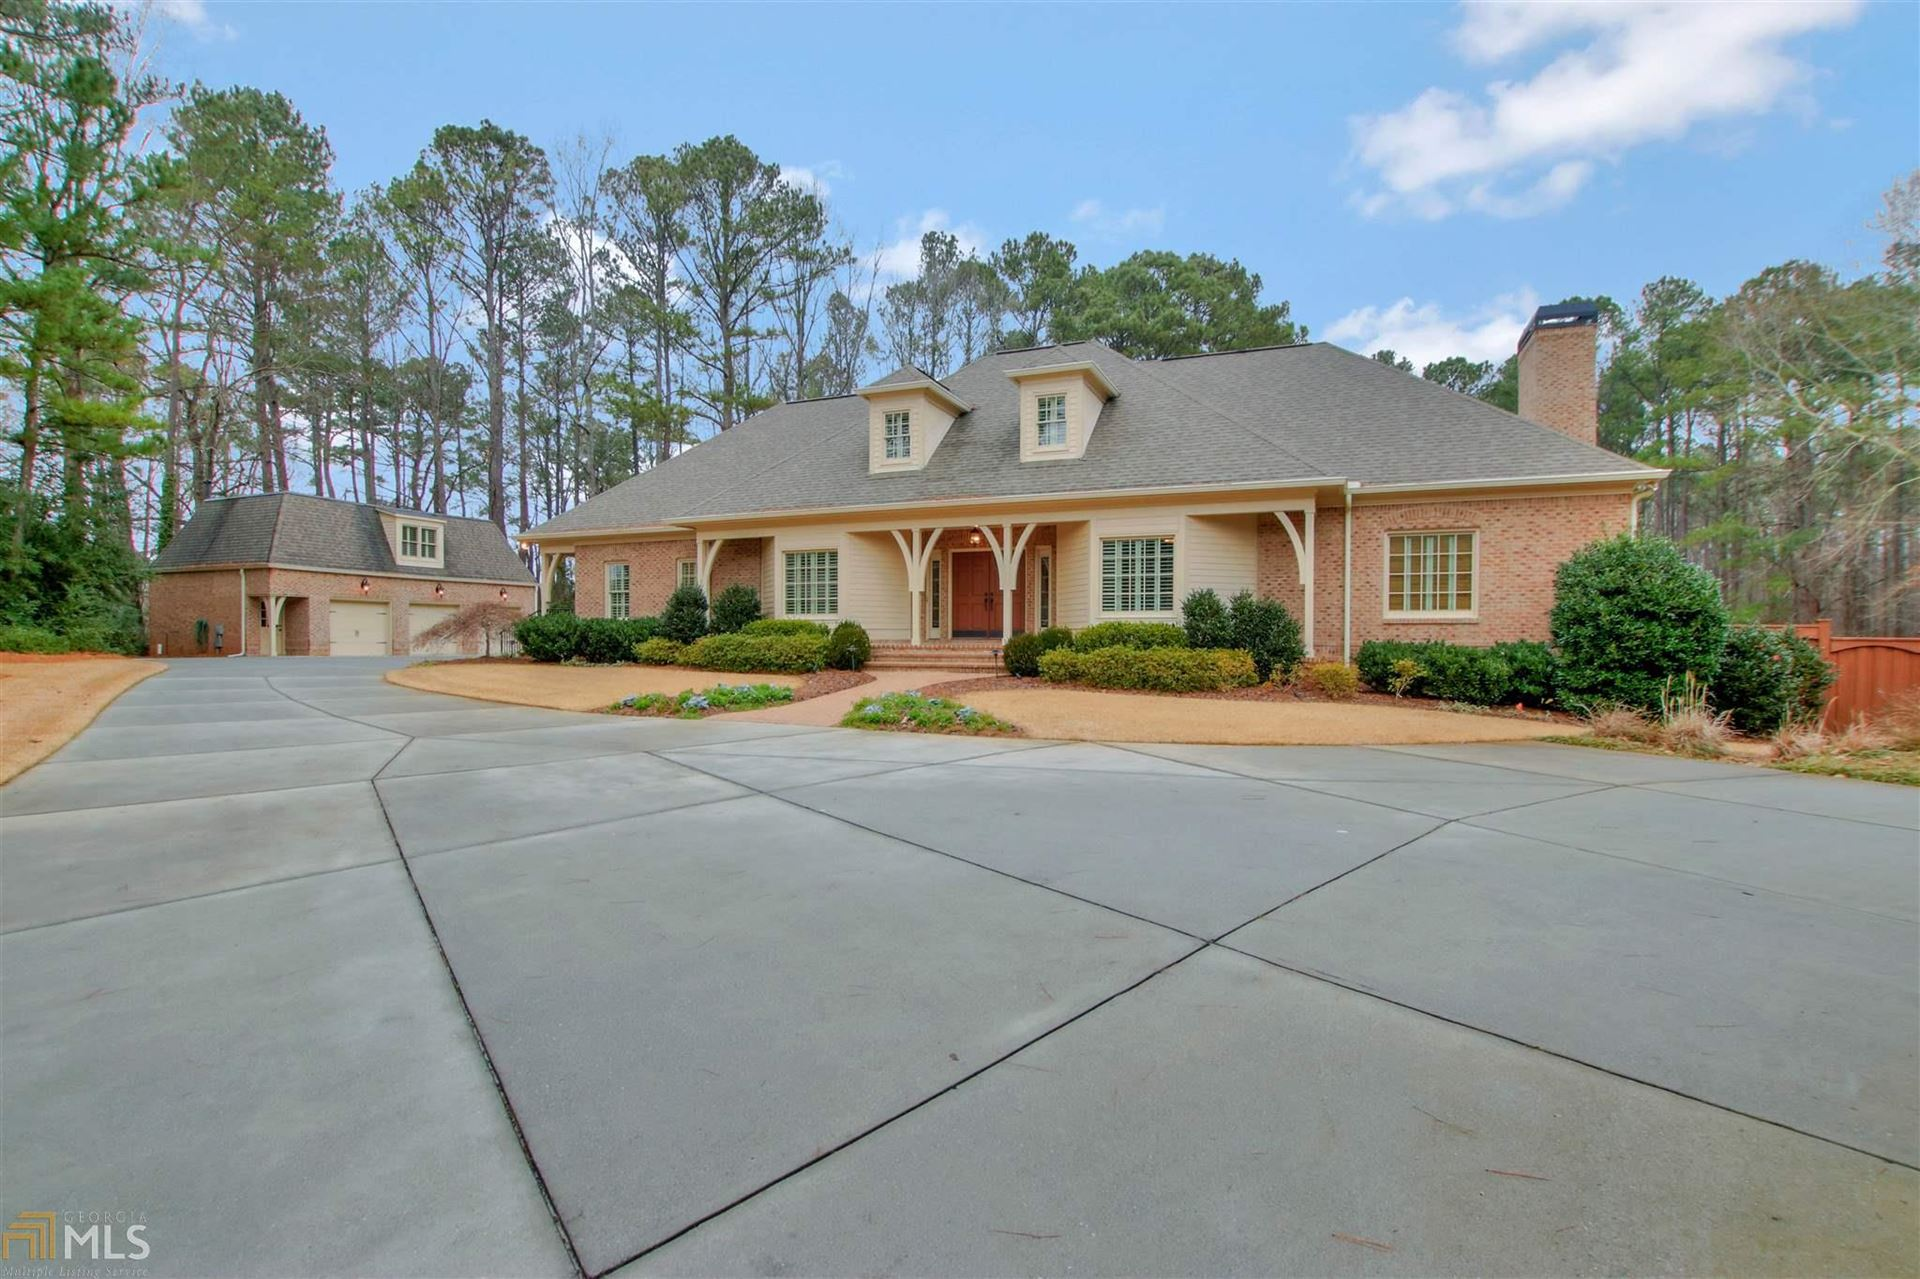 1491 Kings Xing, Stone Mountain, GA 30087 - MLS#: 8914133